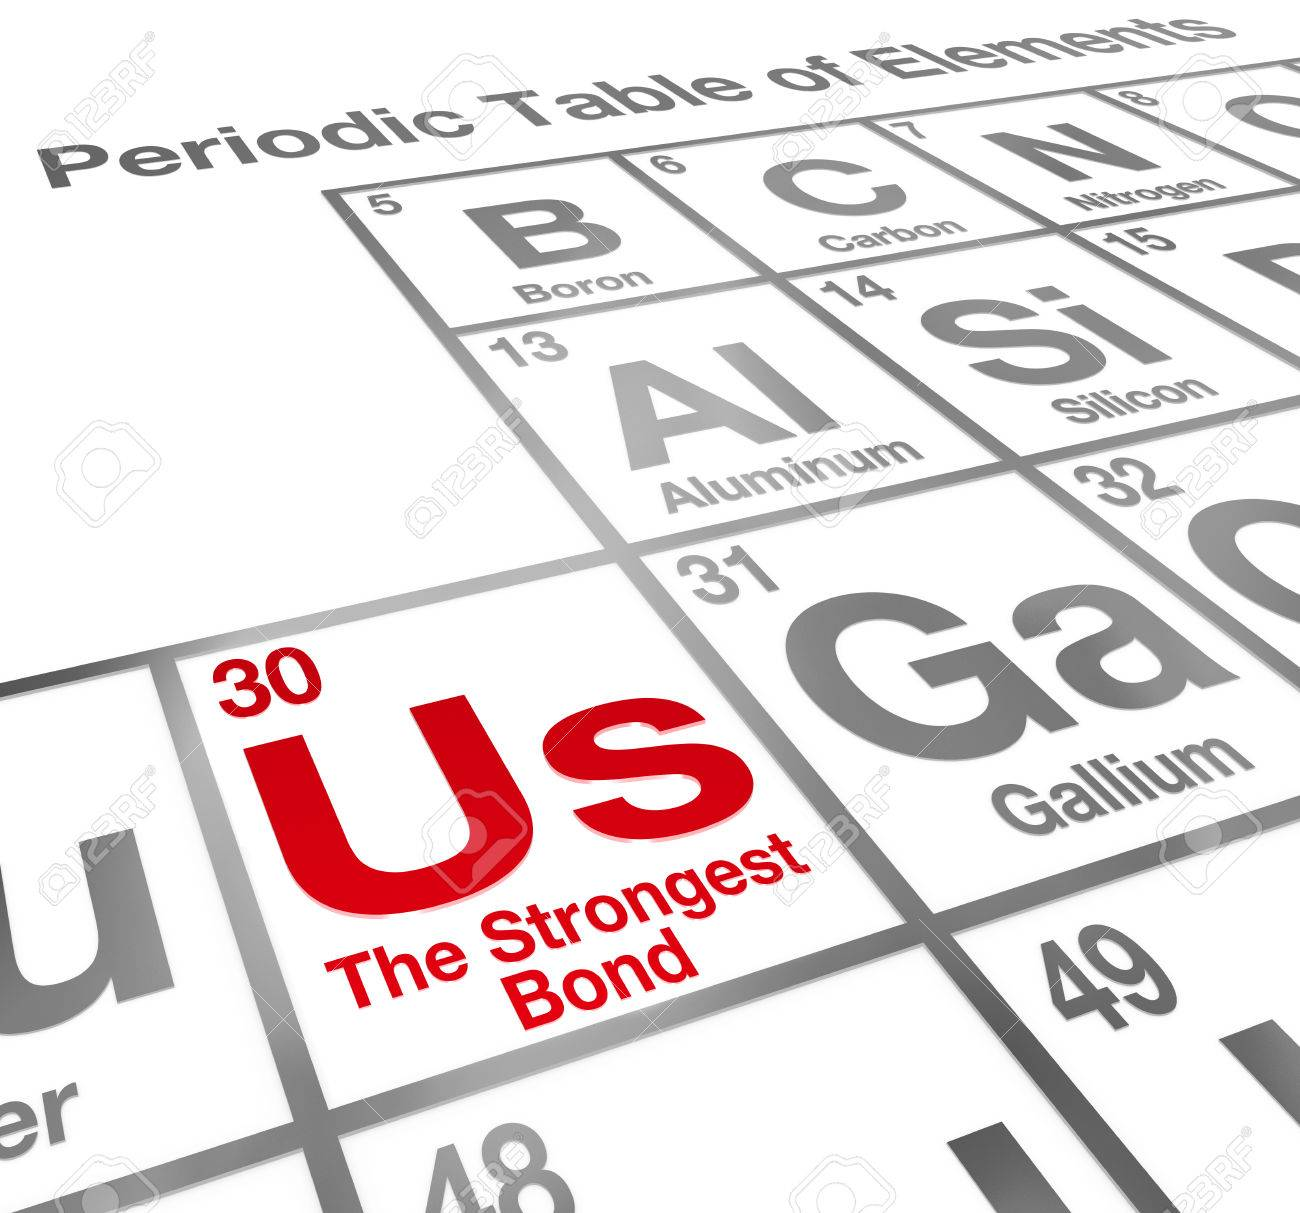 Us the strongest bond words on a periodic table of elements stock photo us the strongest bond words on a periodic table of elements describing the importance of partnership teamwork and unity urtaz Image collections